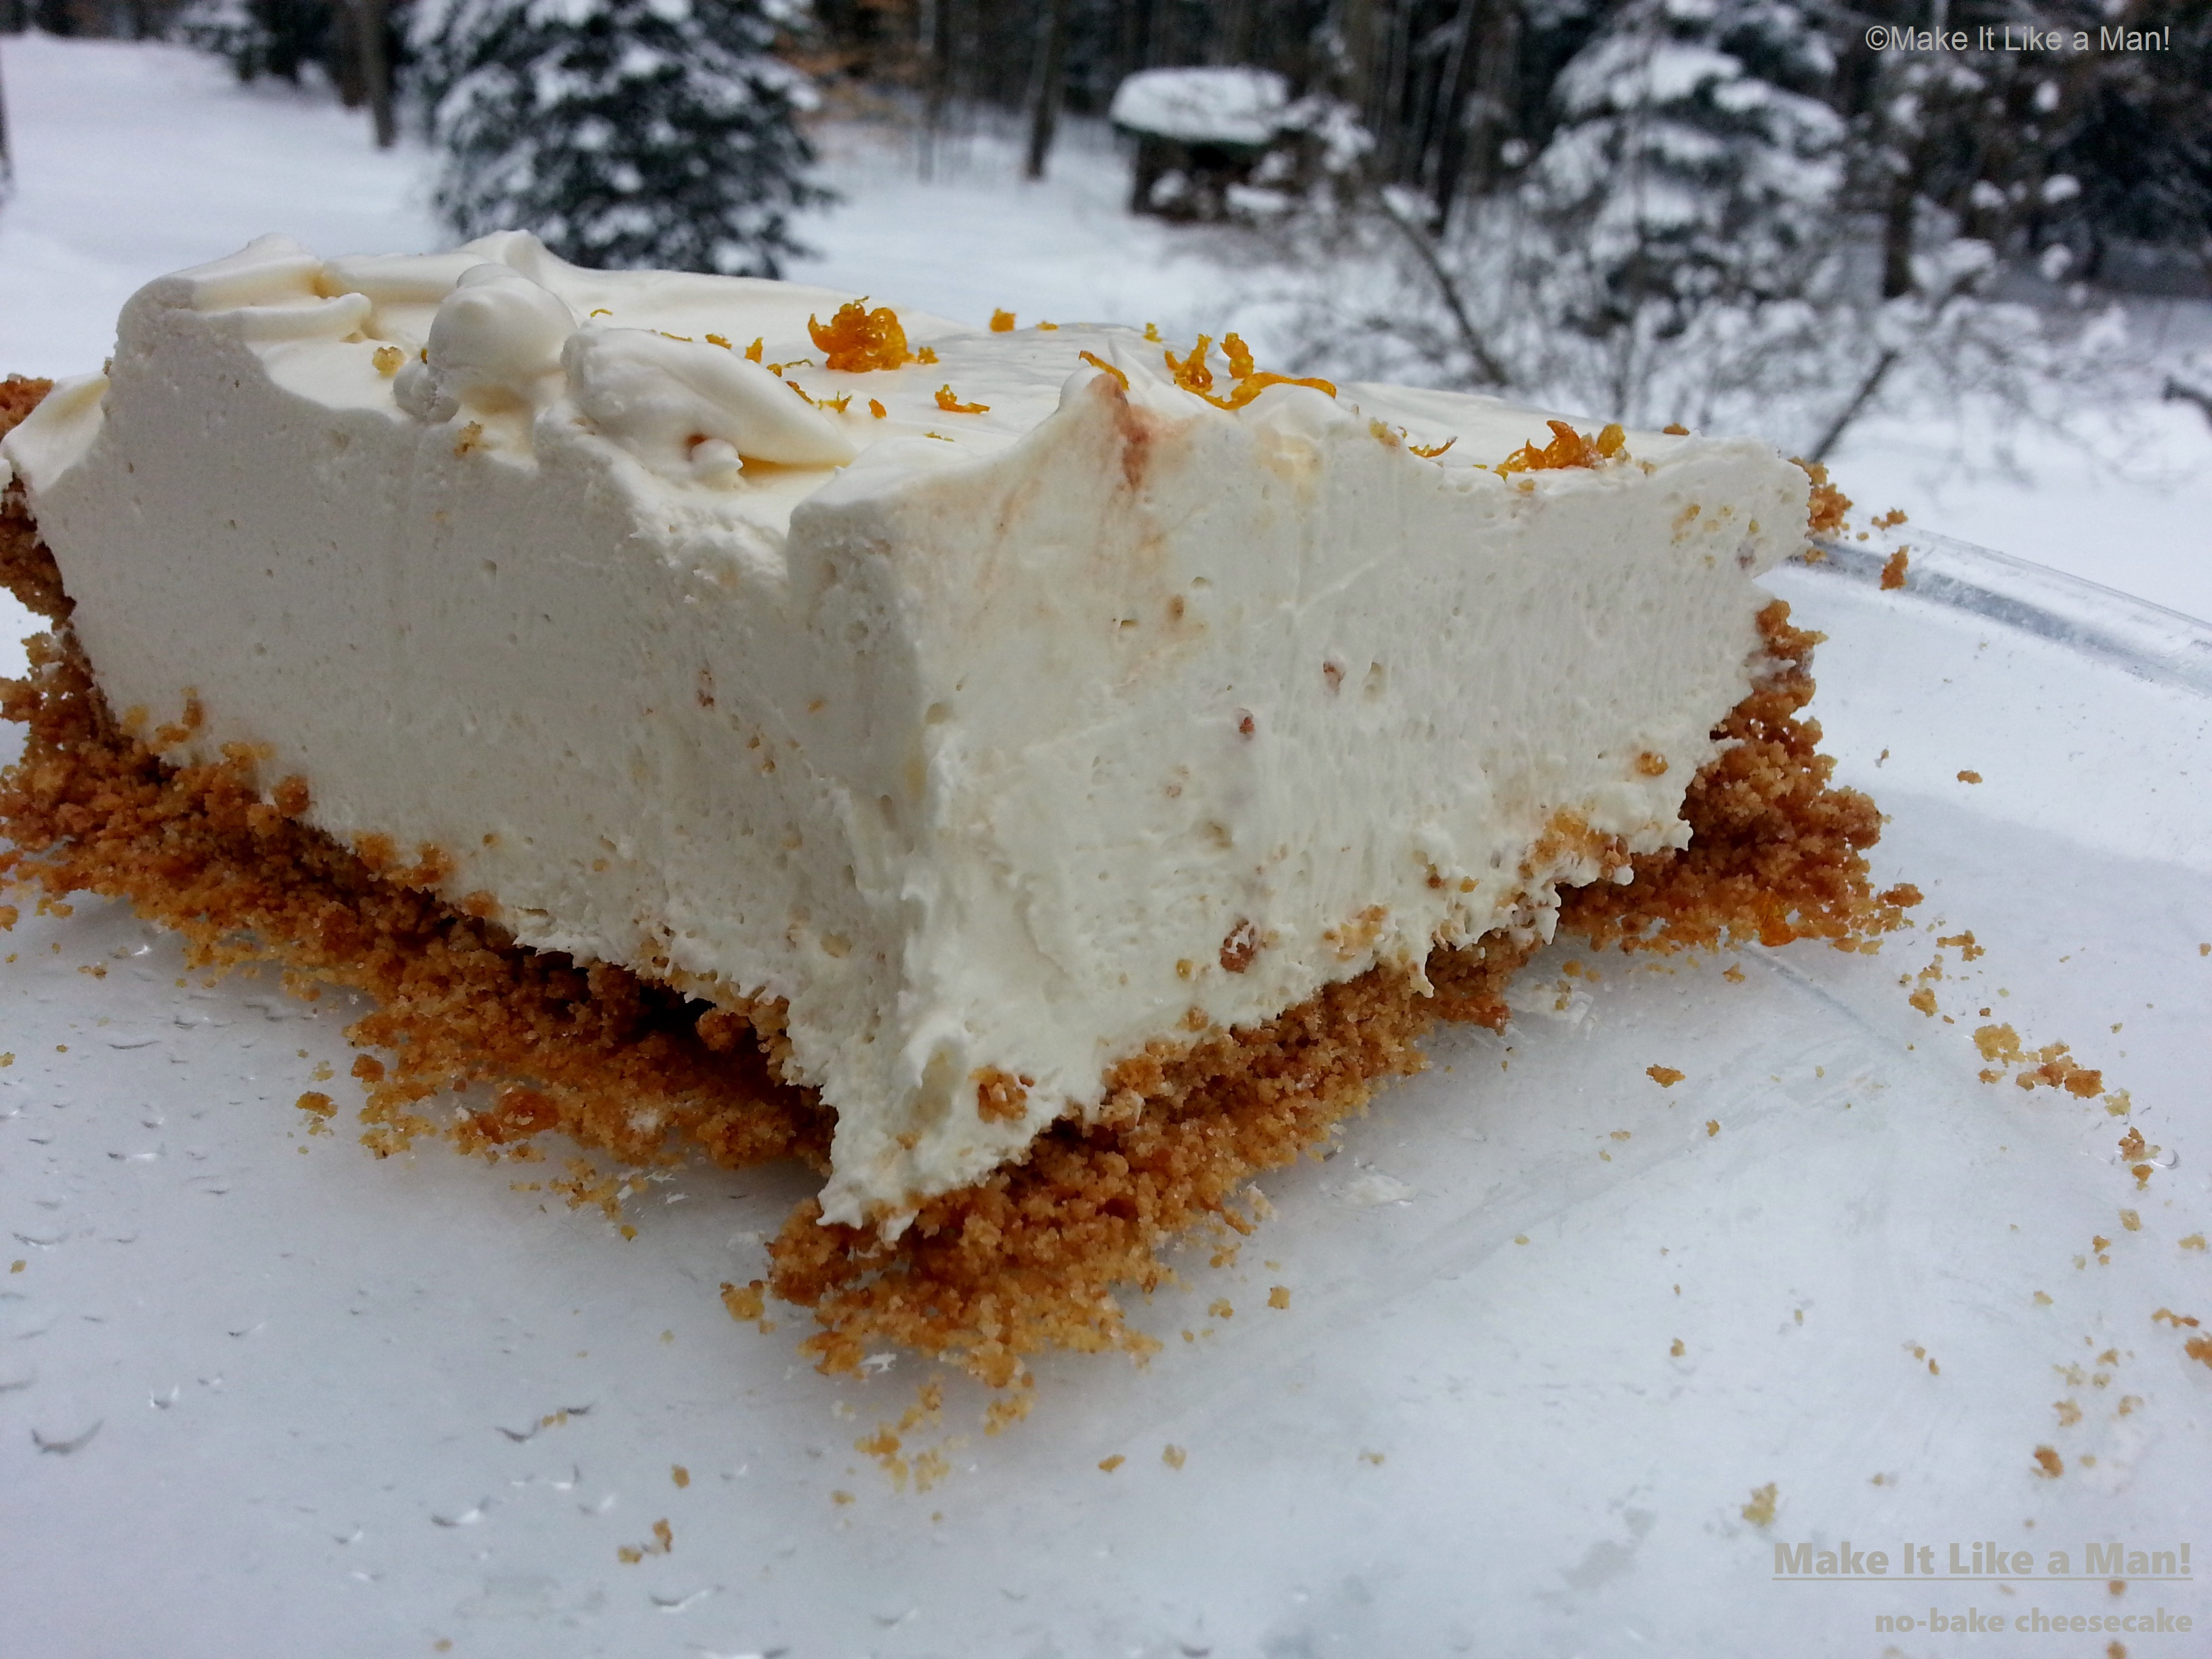 "Frozen No-Bake Cheesecake,"" from Make It Like a Man"